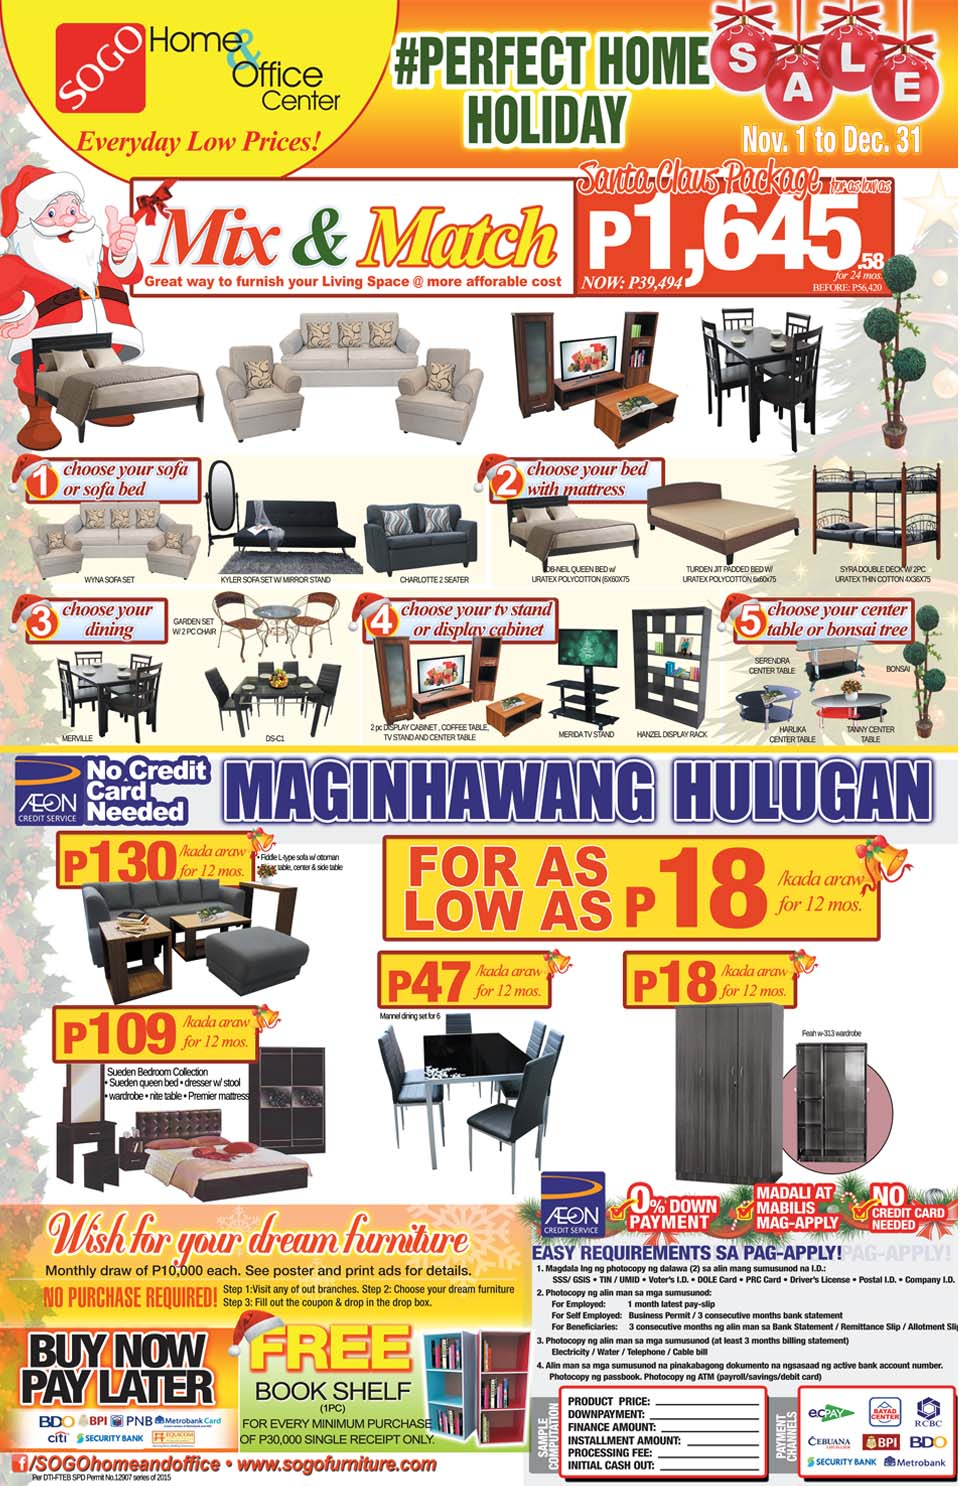 Sogo home office center perfect holiday sale ednything Robinson s home furniture philippines